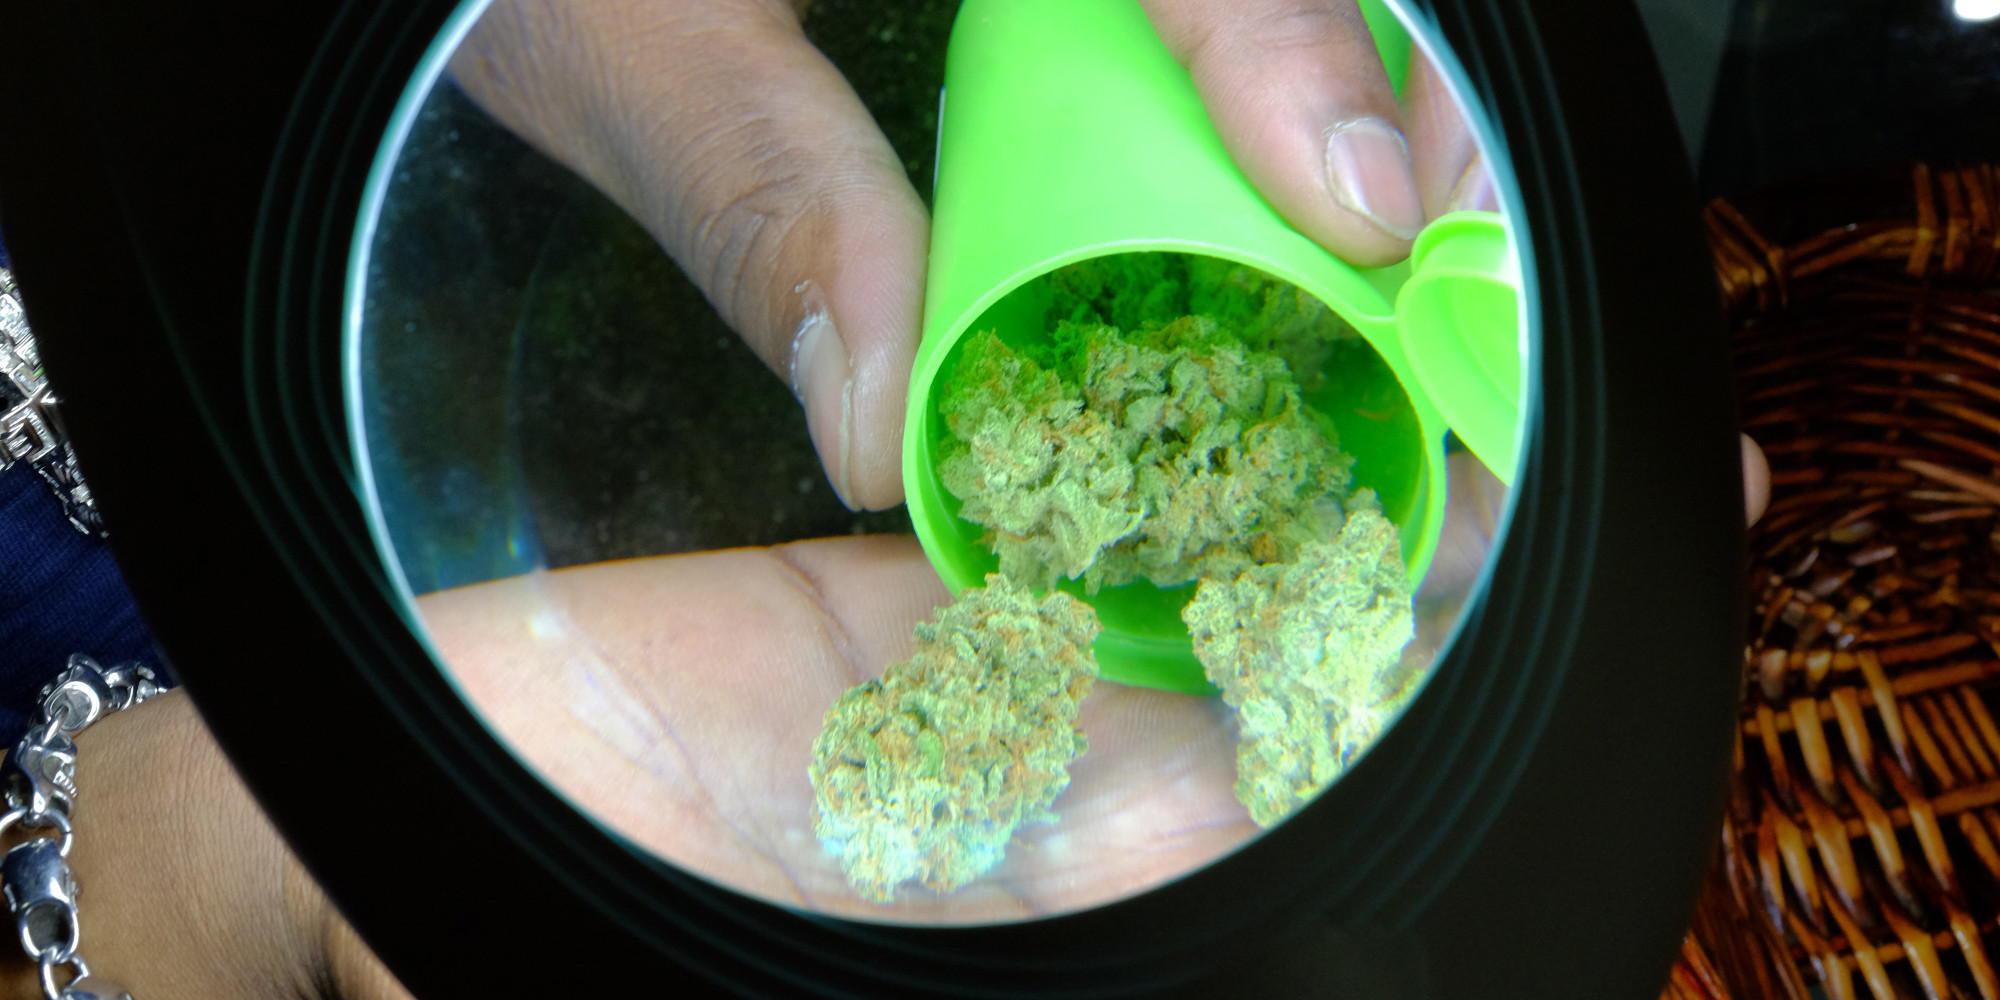 Uruguay Considers Using Medical Marijuana To Treat Cocaine Addicts In Prison  HuffPost